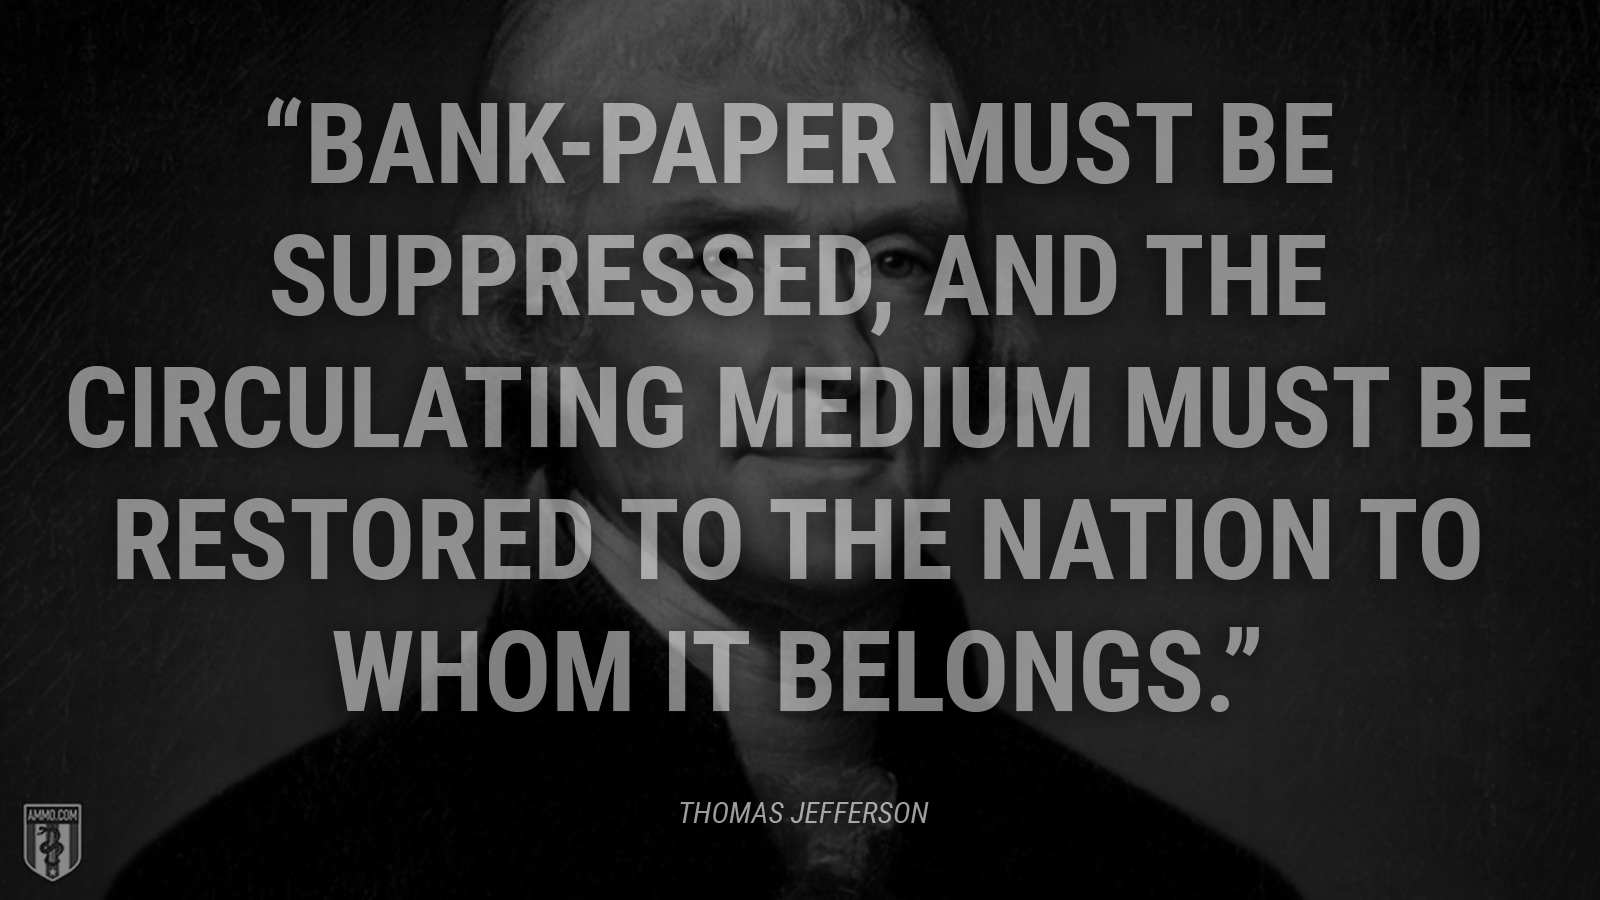 """Bank-paper must be suppressed, and the circulating medium must be restored to the nation to whom it belongs."" - Thomas Jefferson"